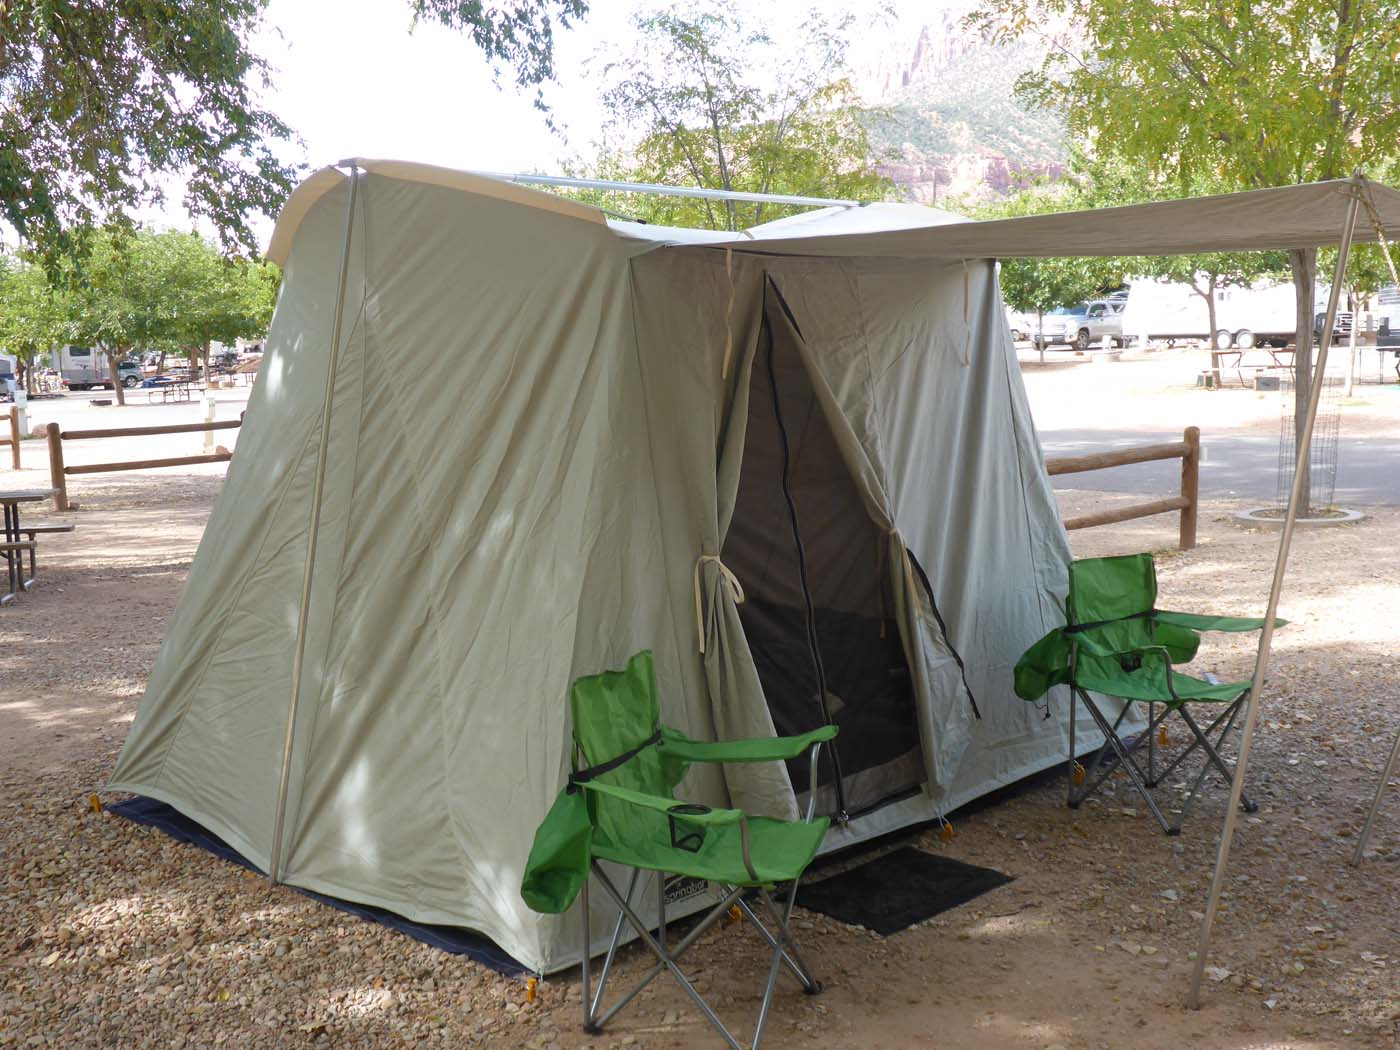 zion-camping-small springbar tent-camp chairs.JPG